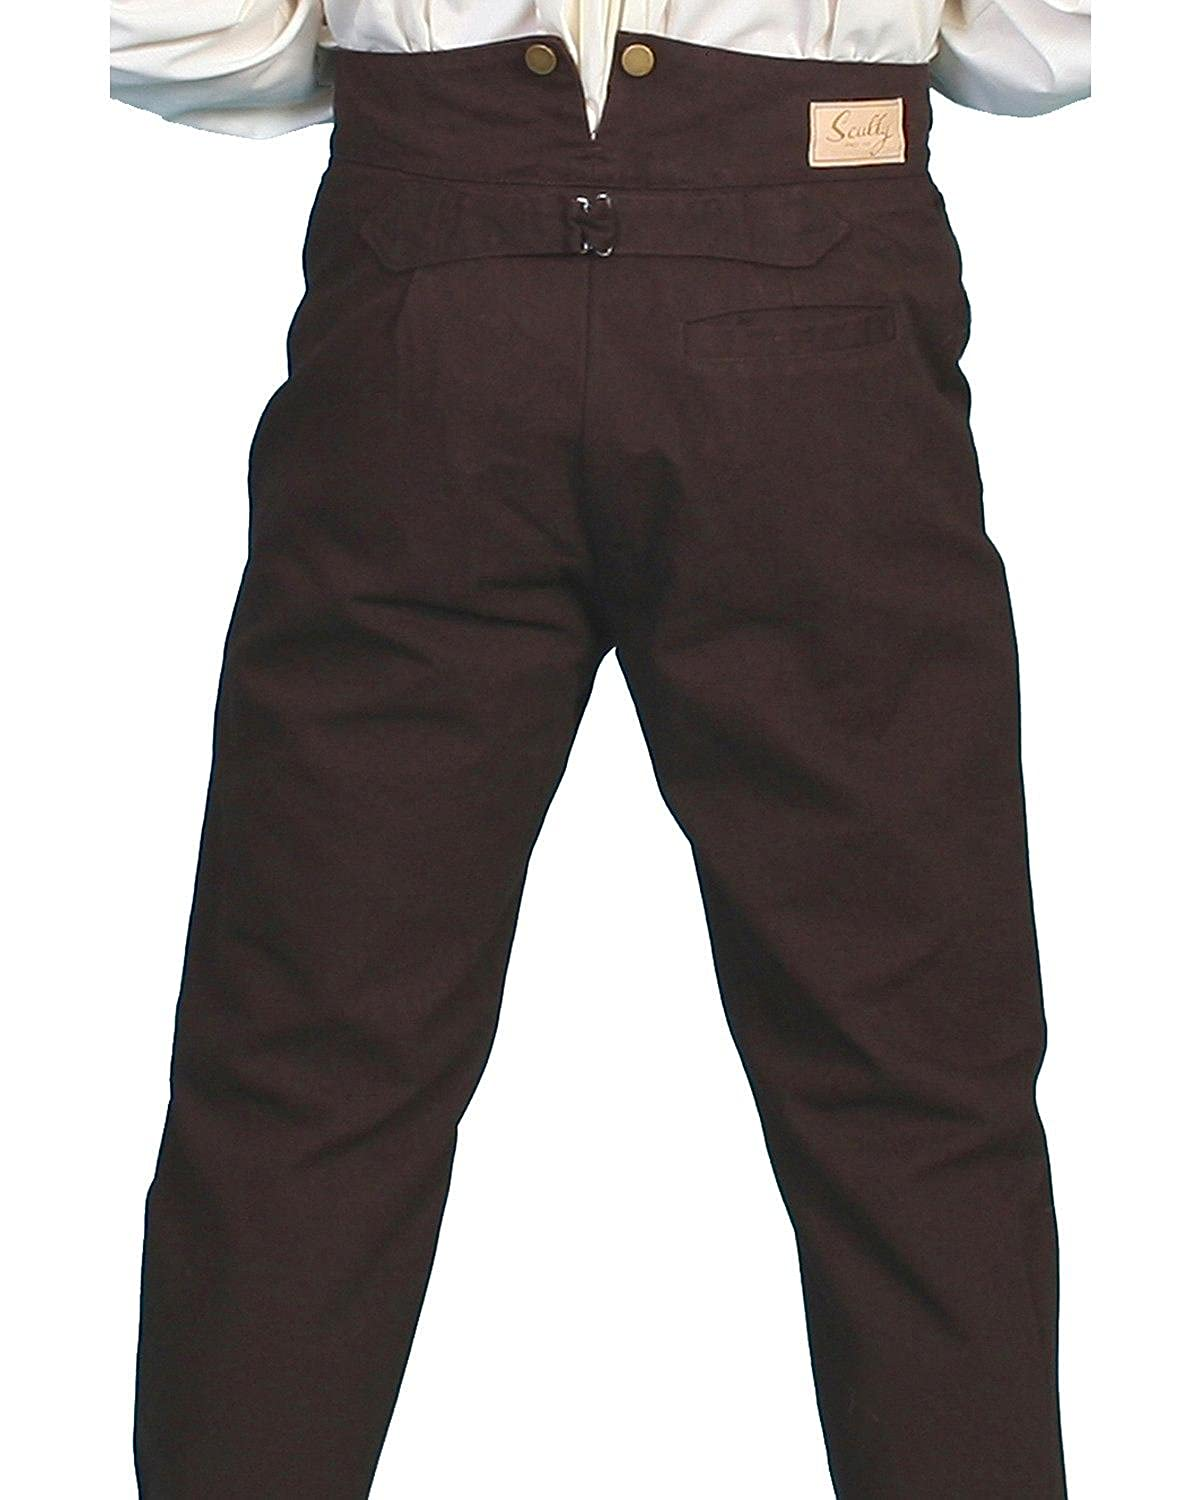 1920s Men's Clothing Scully Rangewear Mens Rangewear Canvas Pants $51.90 AT vintagedancer.com